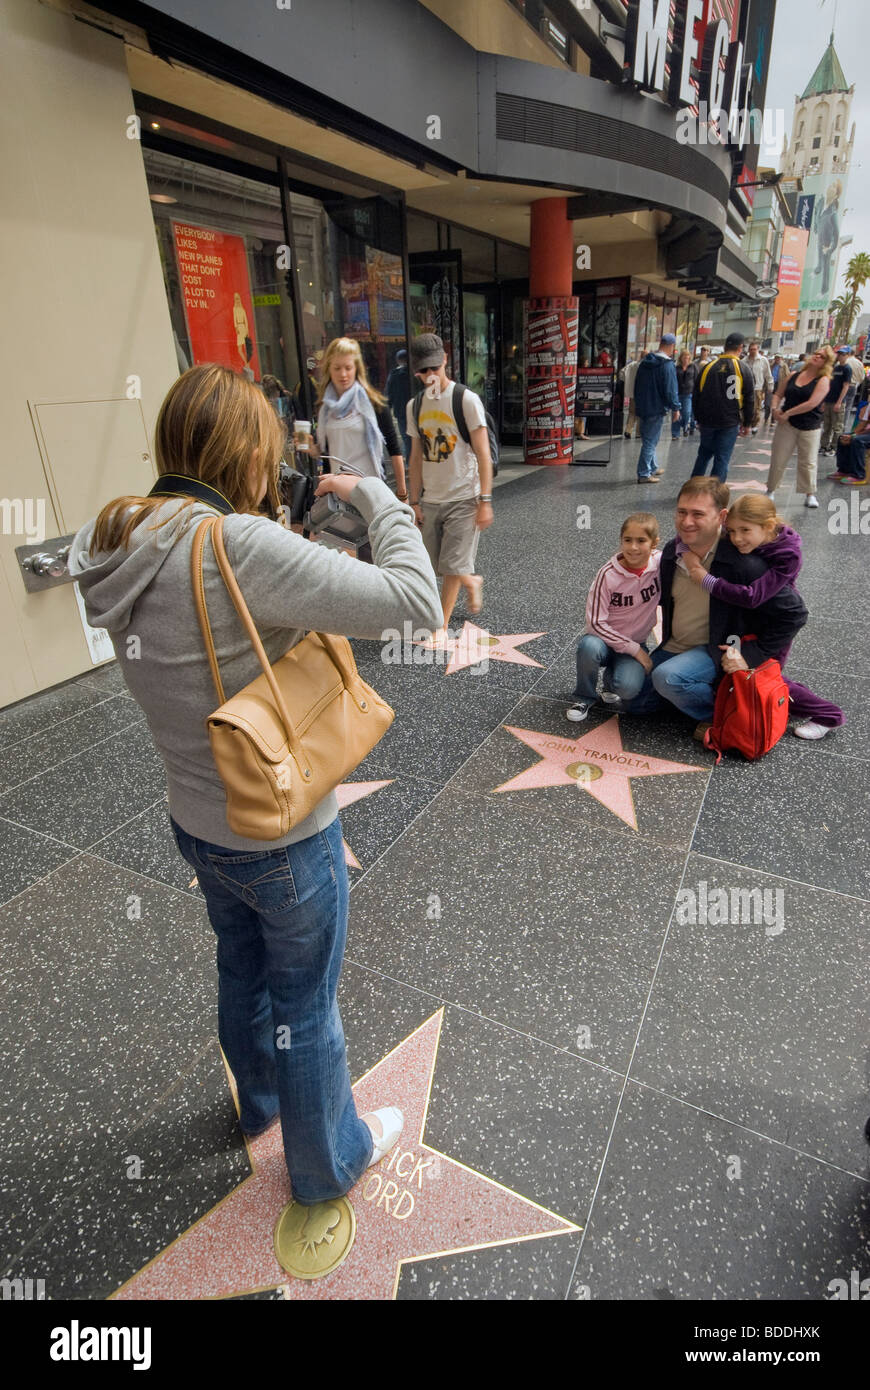 Tourists at Walk of Fame at Hollywood Boulevard, Hollywood, California, USA - Stock Image